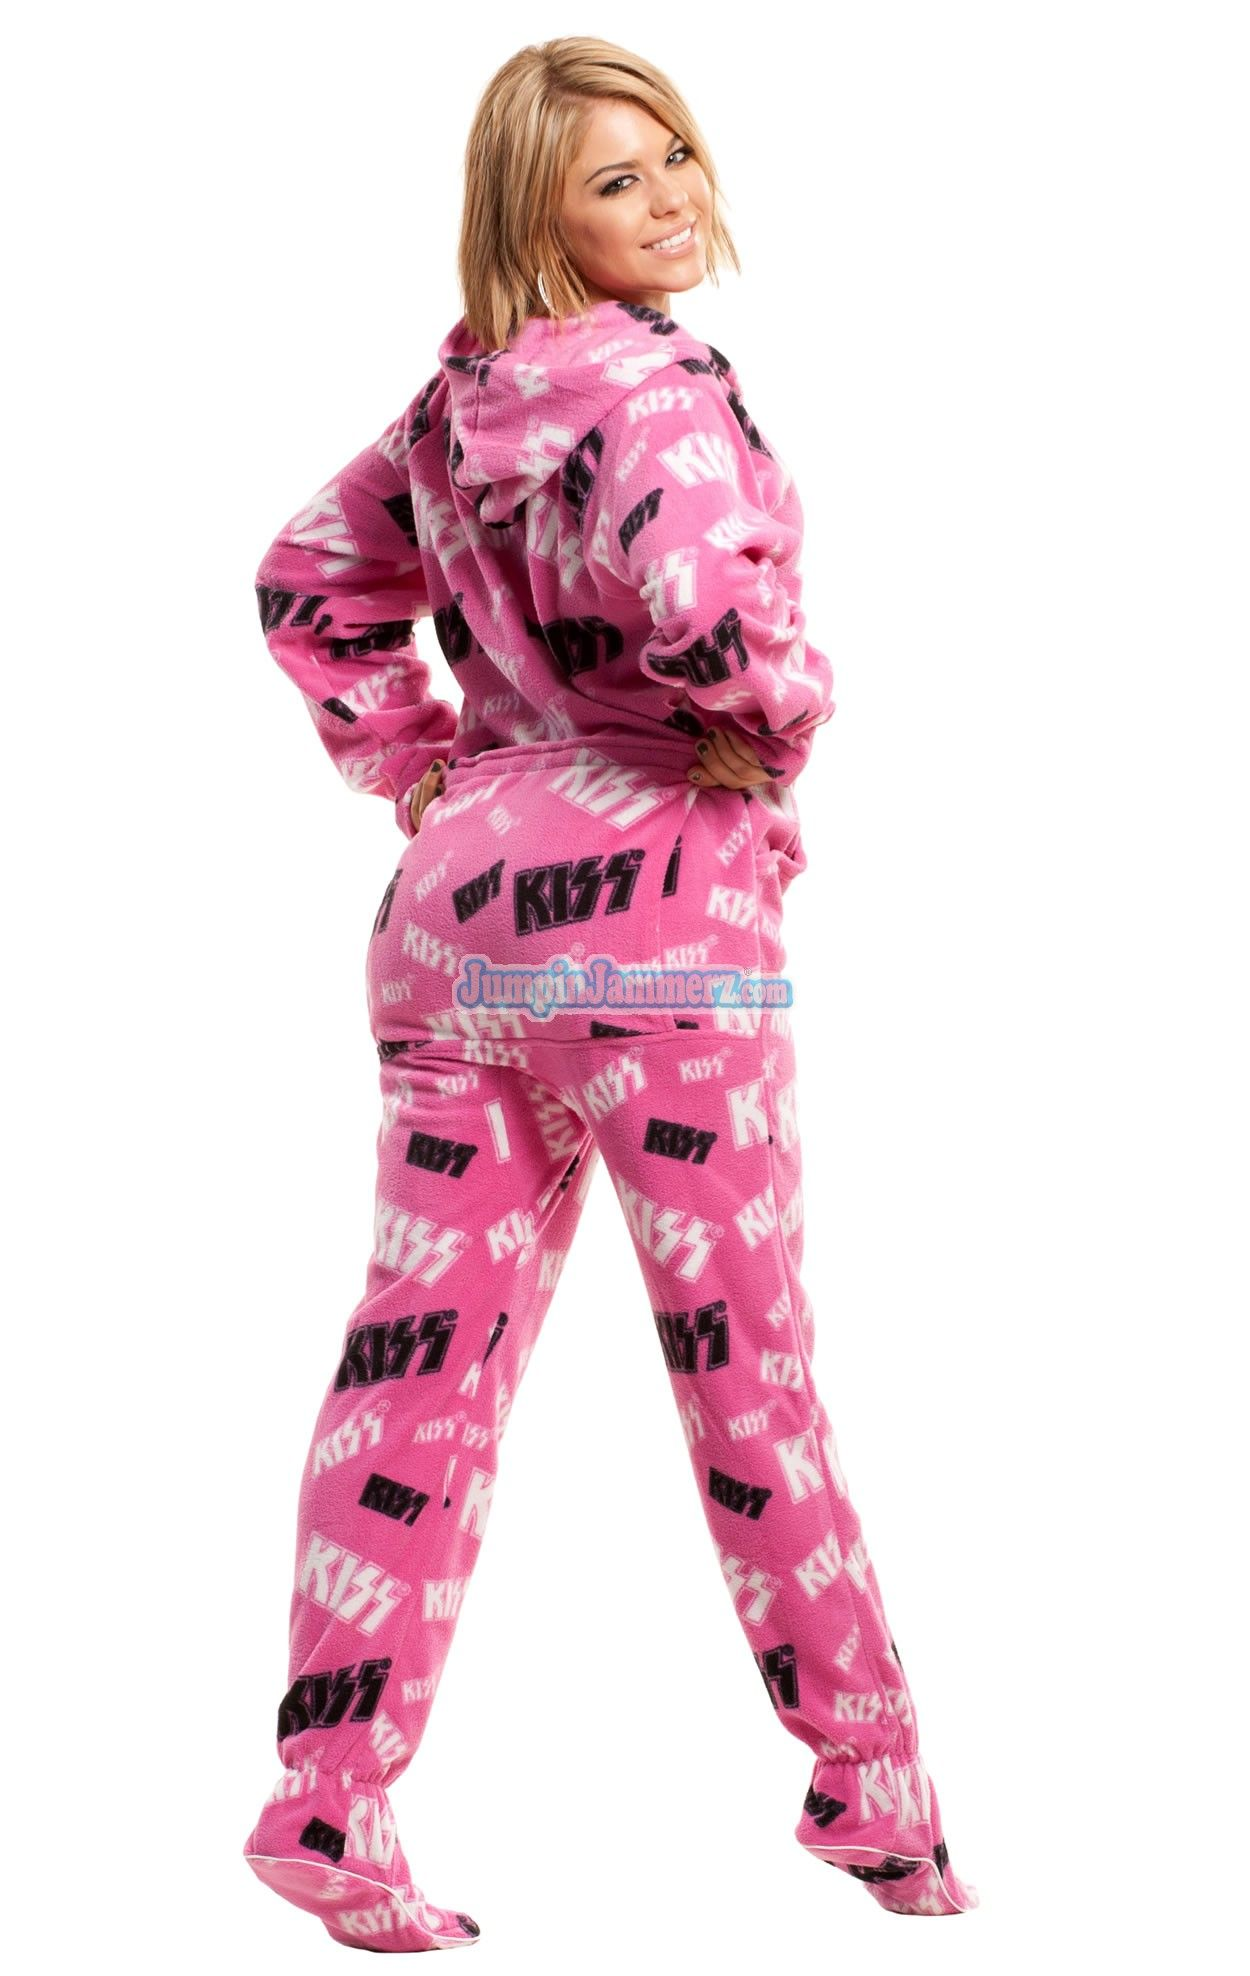 accd1c5ad8 DROP SEAT HOODED FOOTED PAJAMAS - All attitude all night. Features Hoodie